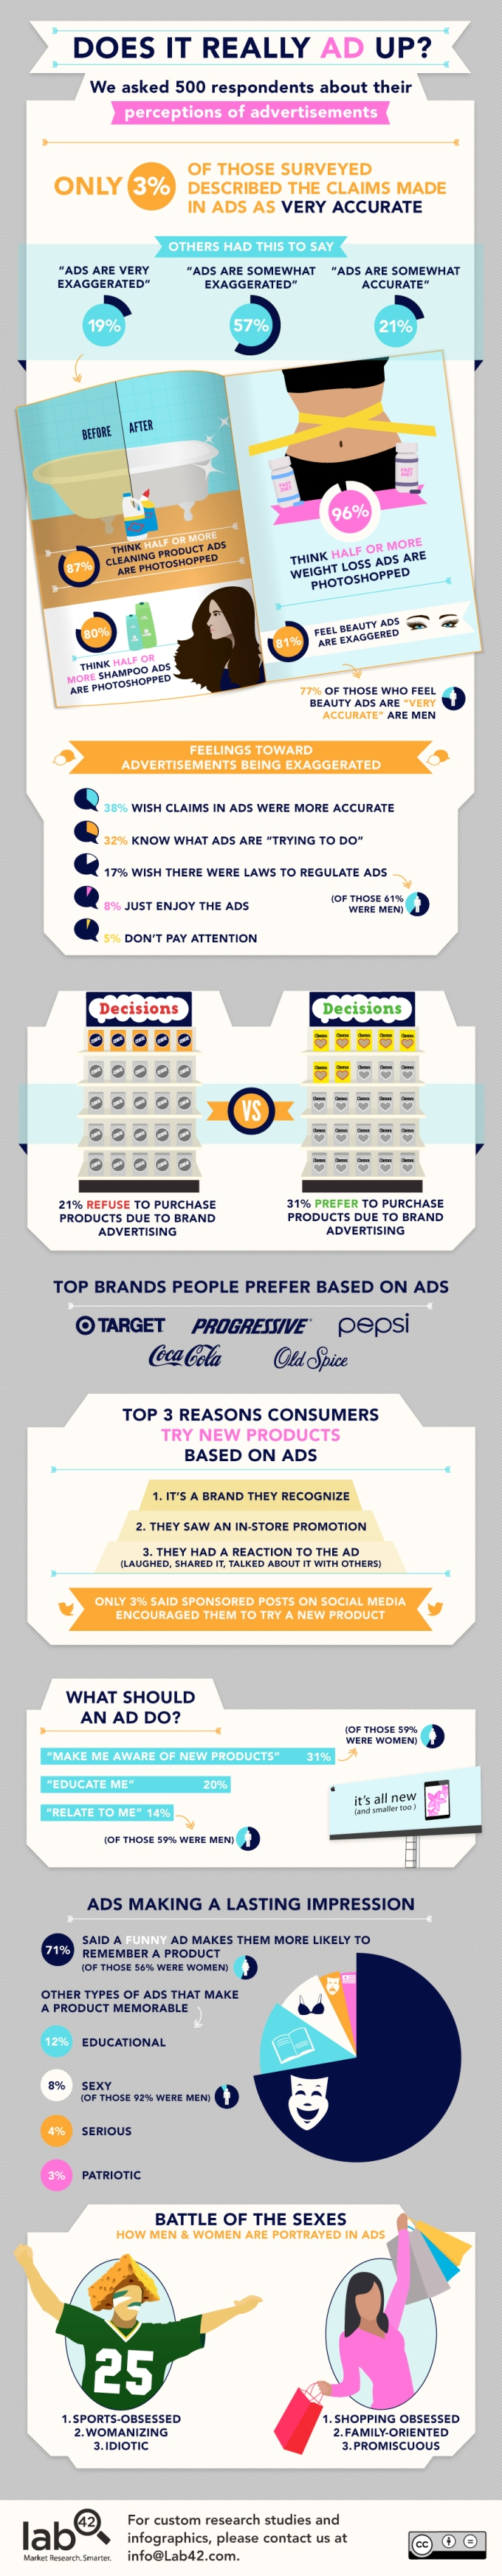 ad-perceptions-infographic